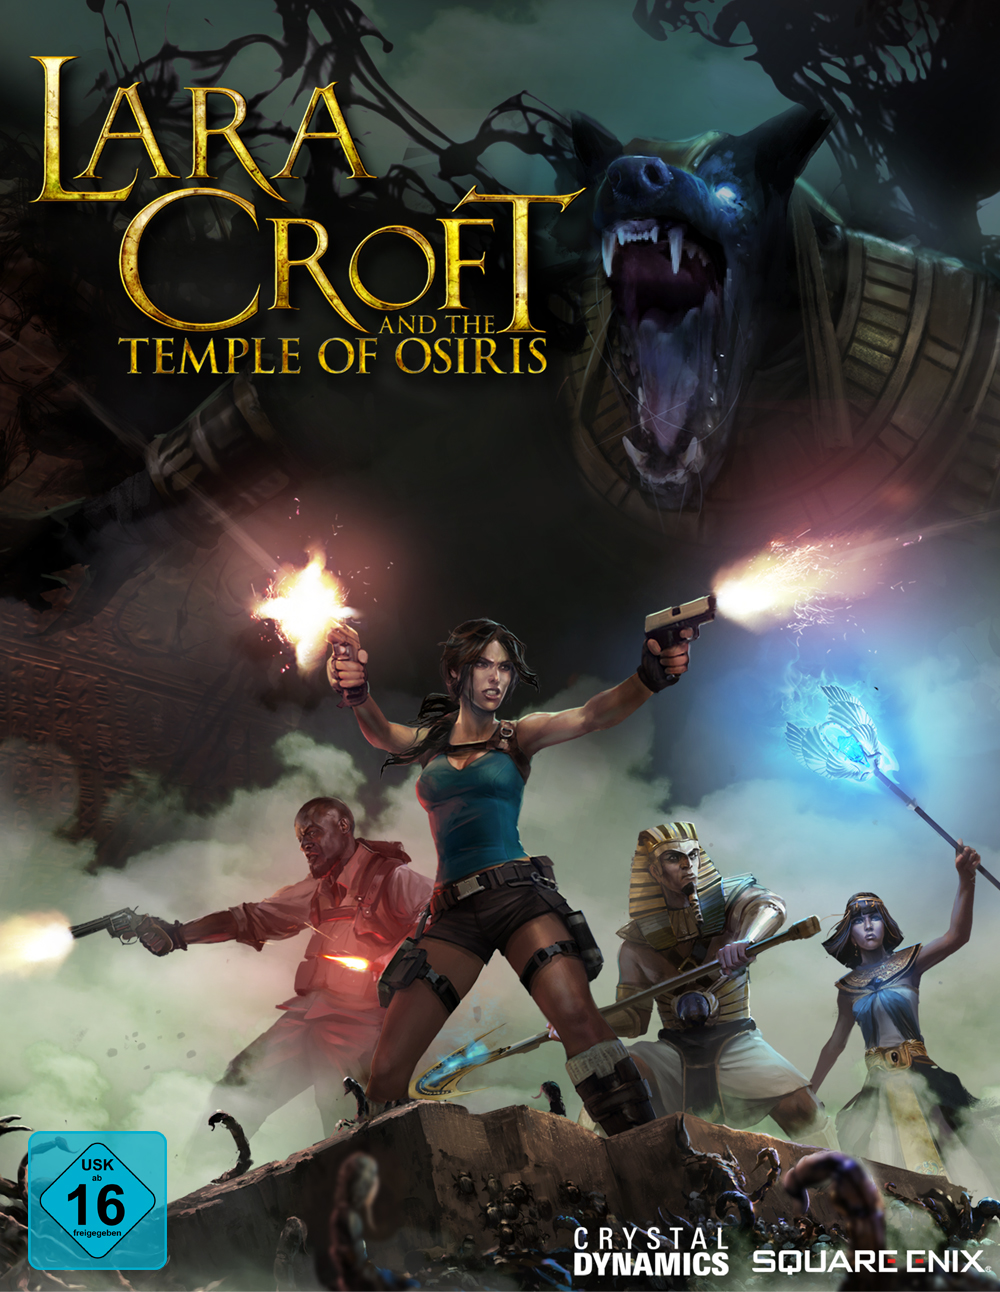 lara-croft-and-the-temple-of-osiris-pc-code-steam